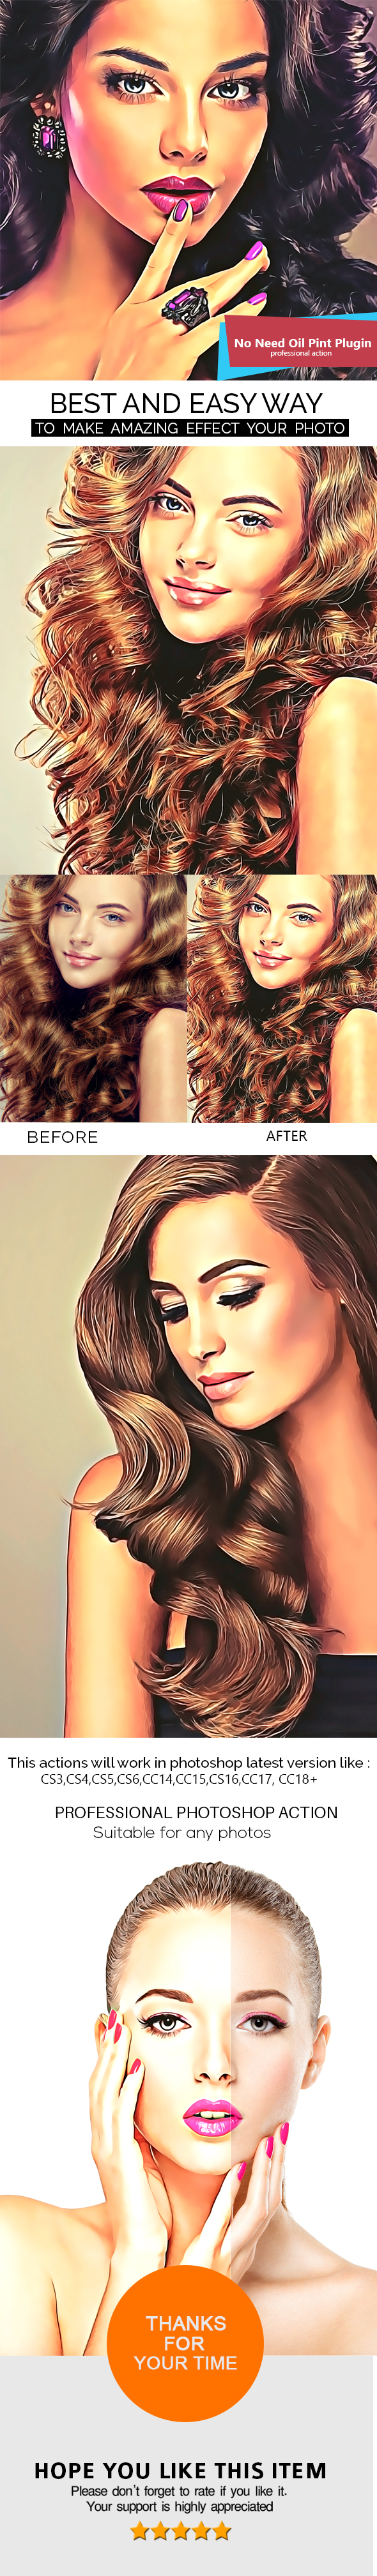 Vector Painting Photoshop Action V2 - Photo Effects Actions